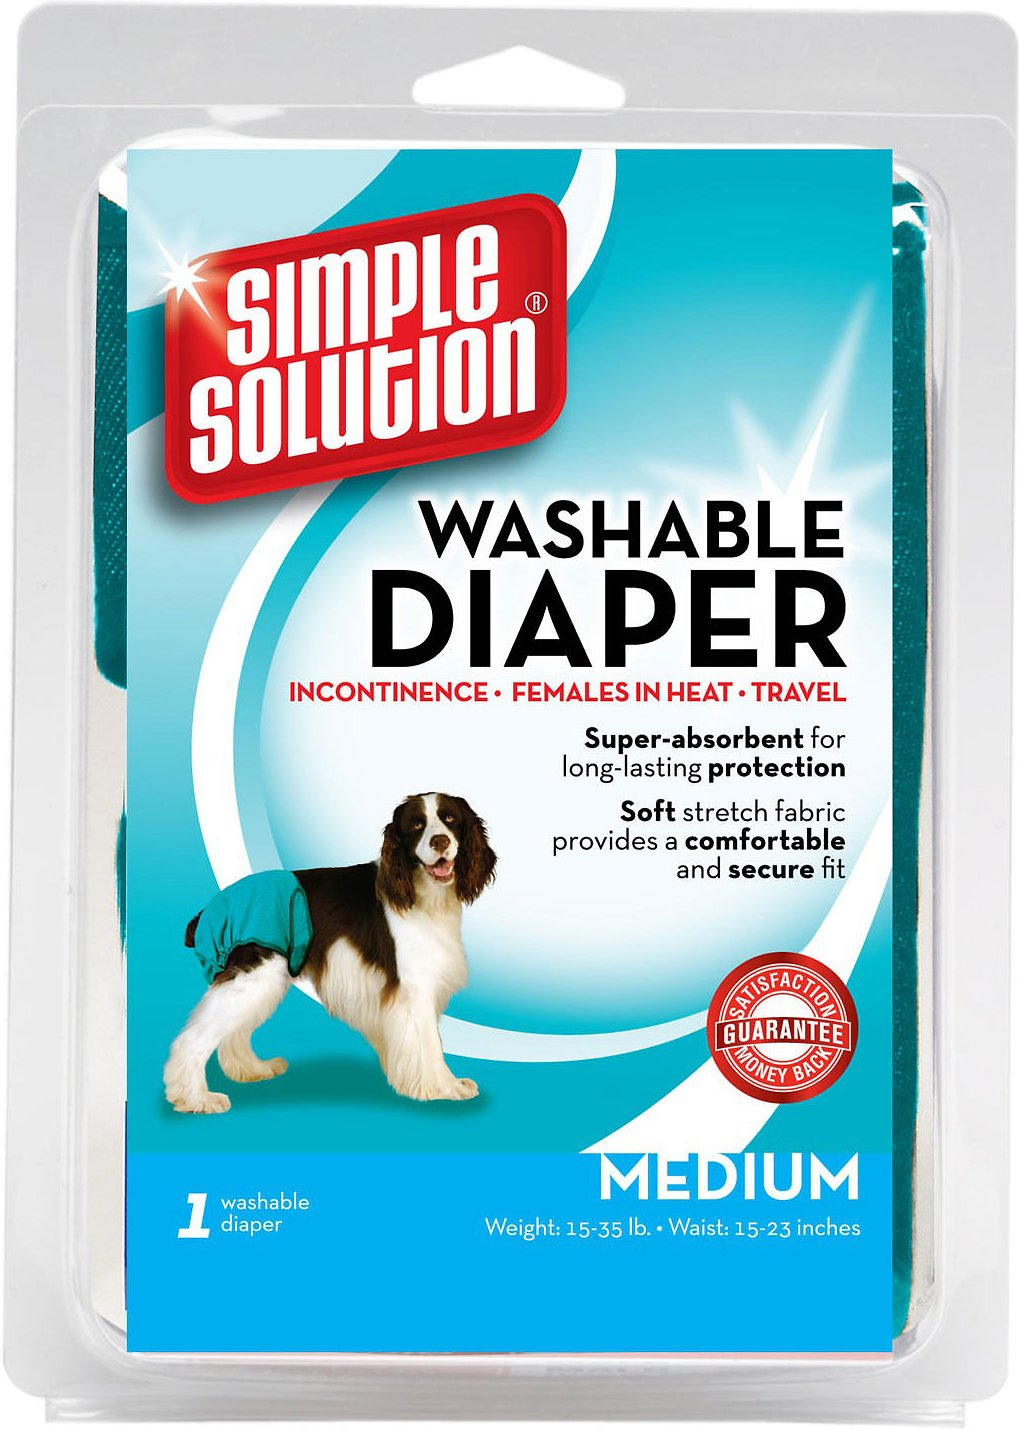 Simple Solution Washable Diaper Image